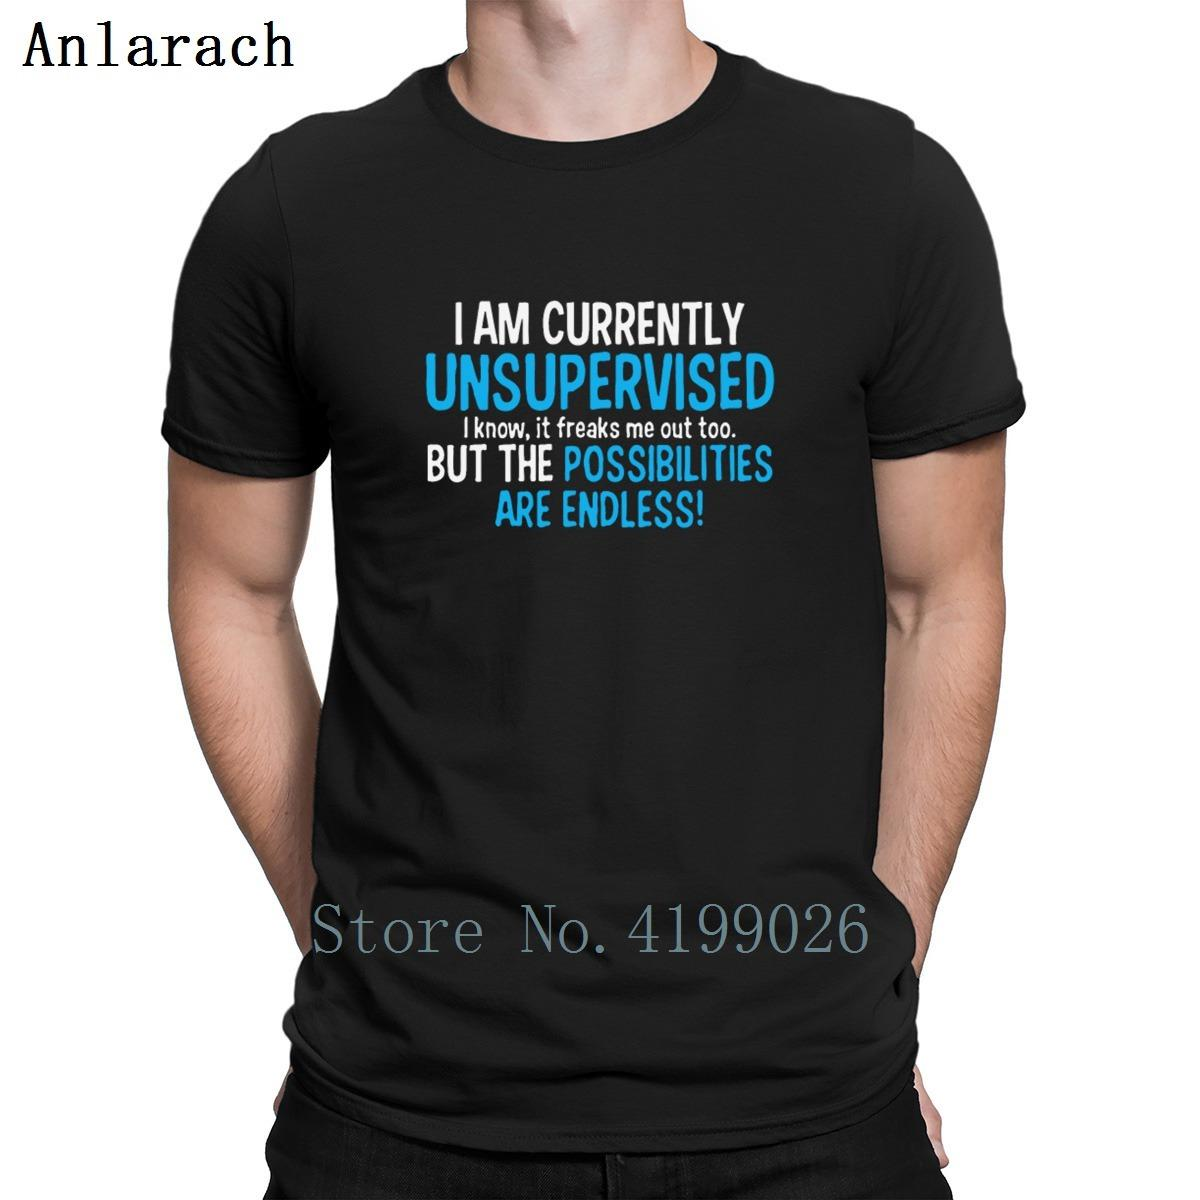 I Am Currently Unsupervised Adult Humor T Shirts O Neck Letters Printing  Spring T Shirt Top Quality Funny Casual Trendy Retro T Shirt Design Tee  Shirts From ...